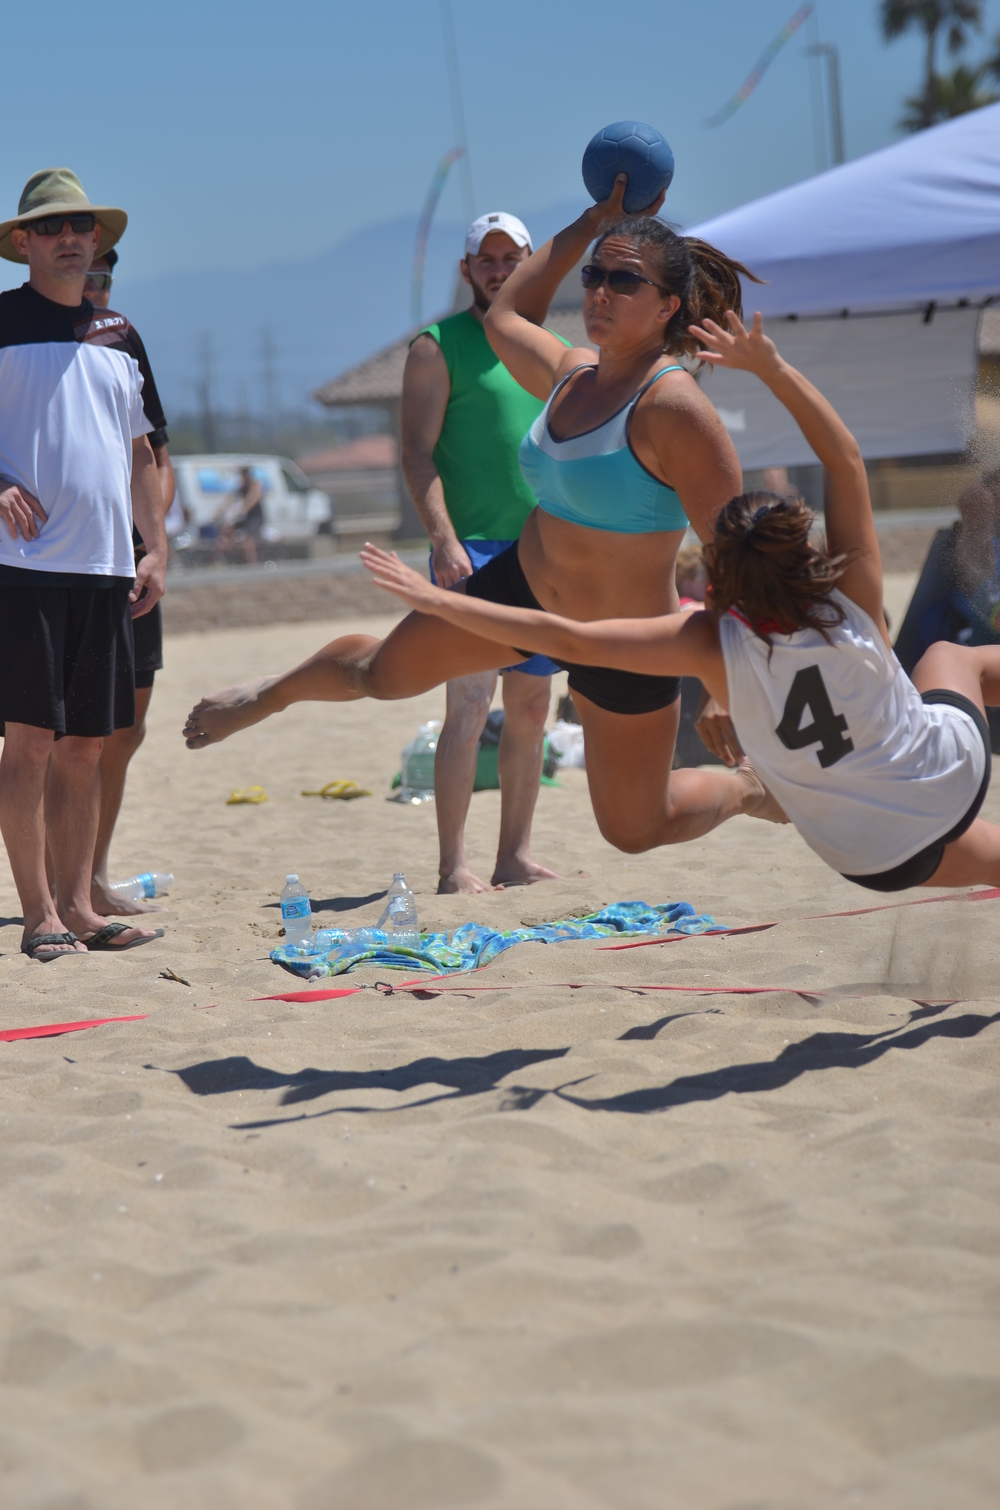 Rachel Wong from LAWTHC in a jumping shot at the 2013 beach handball games in LA. Photo by Atticus Overbay, LA Team Handball photographer